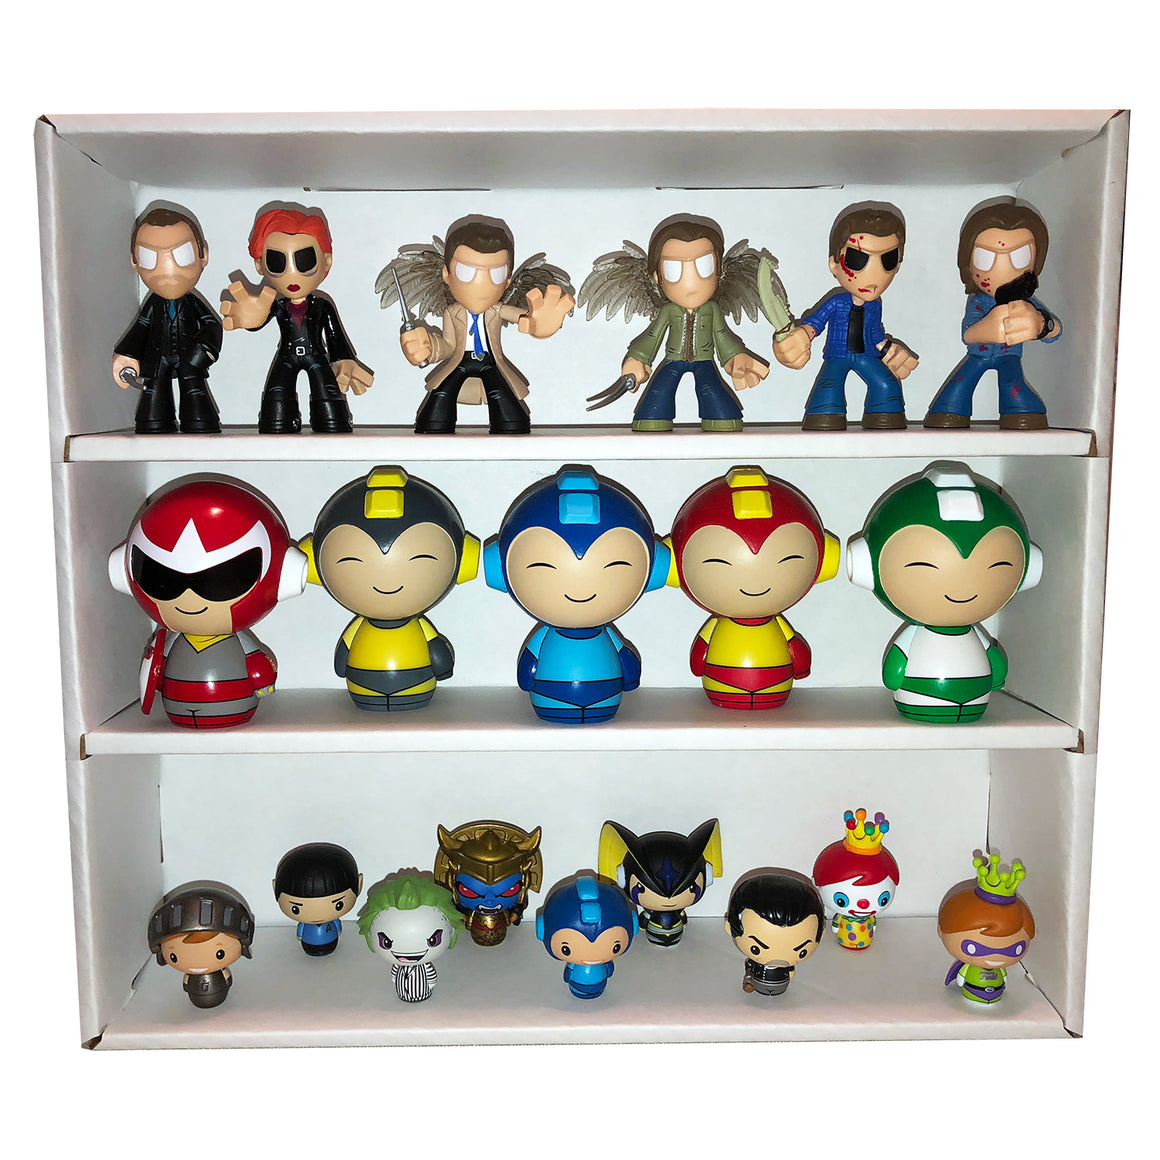 **PRE-ORDER** Mini White Stackable Funko Pop Display Toy Shelf for Vinyl Collectibles, Corrugated Cardboard